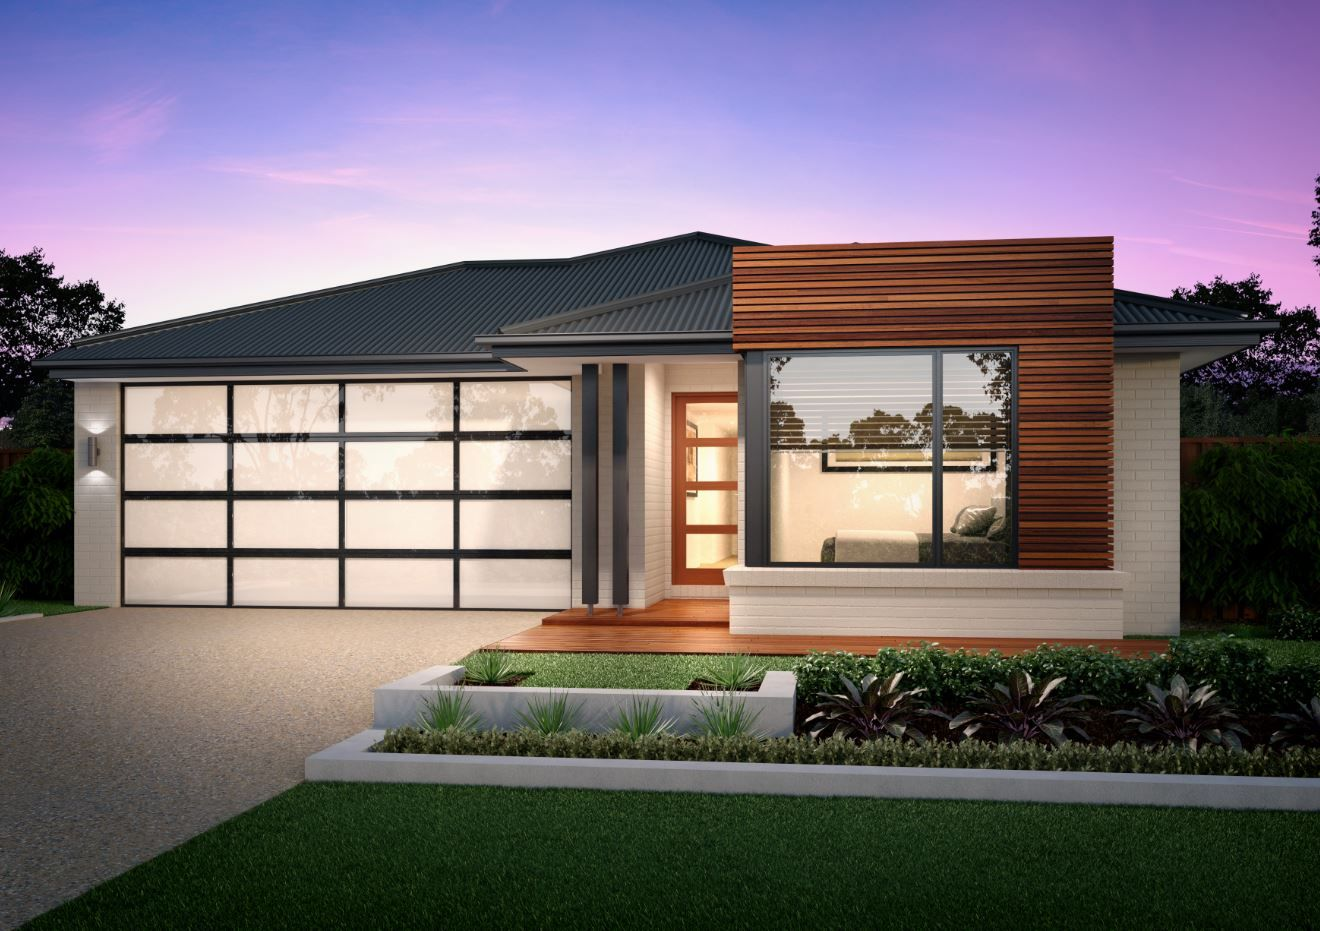 Home Design By Simonds Homes   QLD In QLD , Riverton #housedesigns  #houseandland #